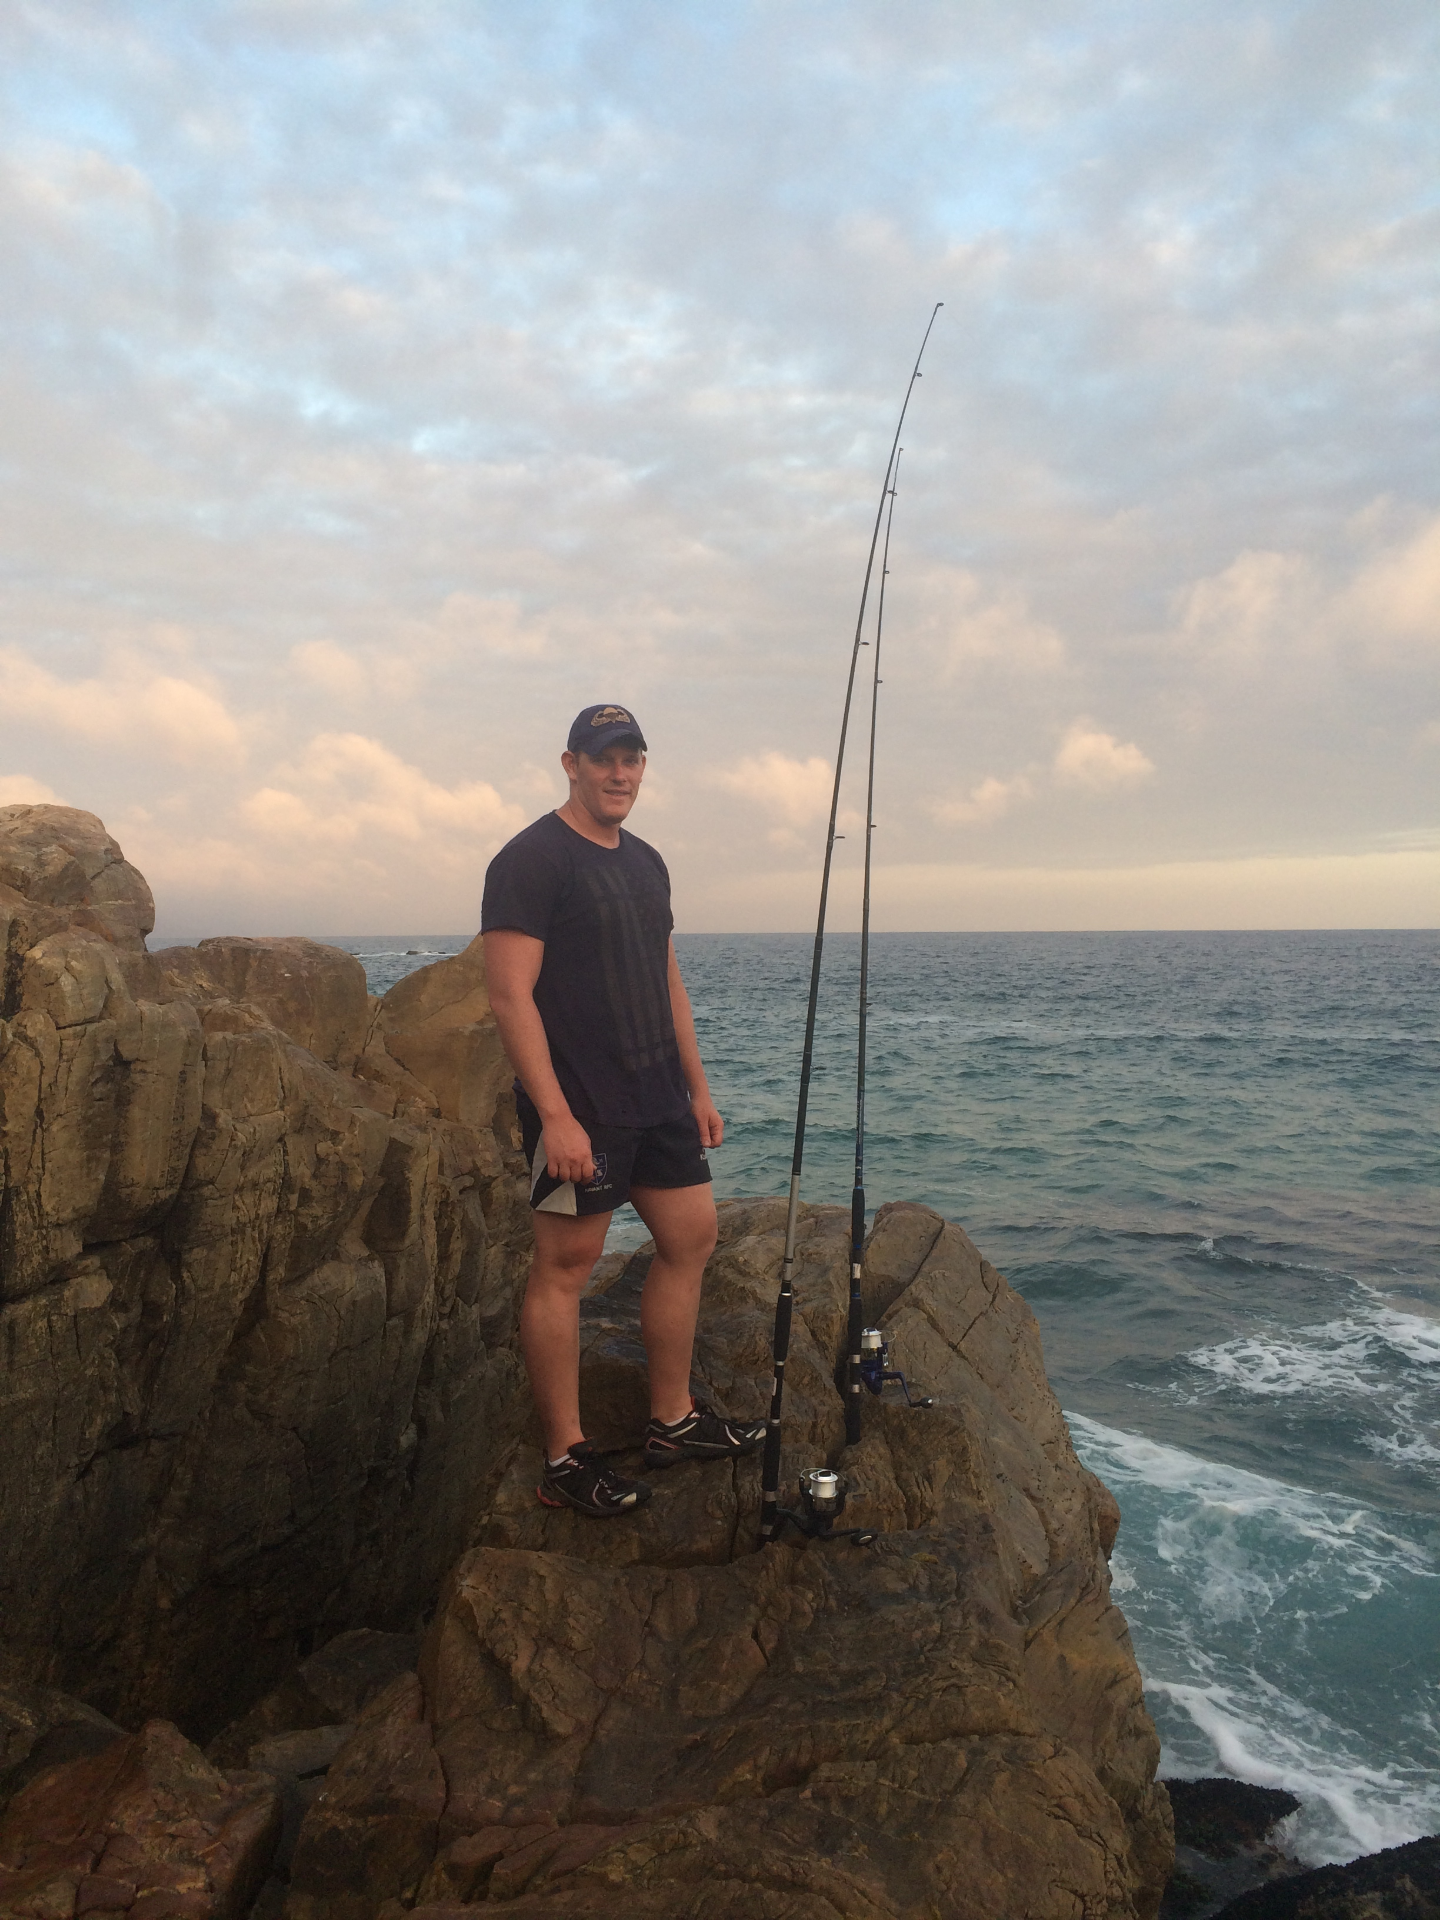 Fishing off the Rocks